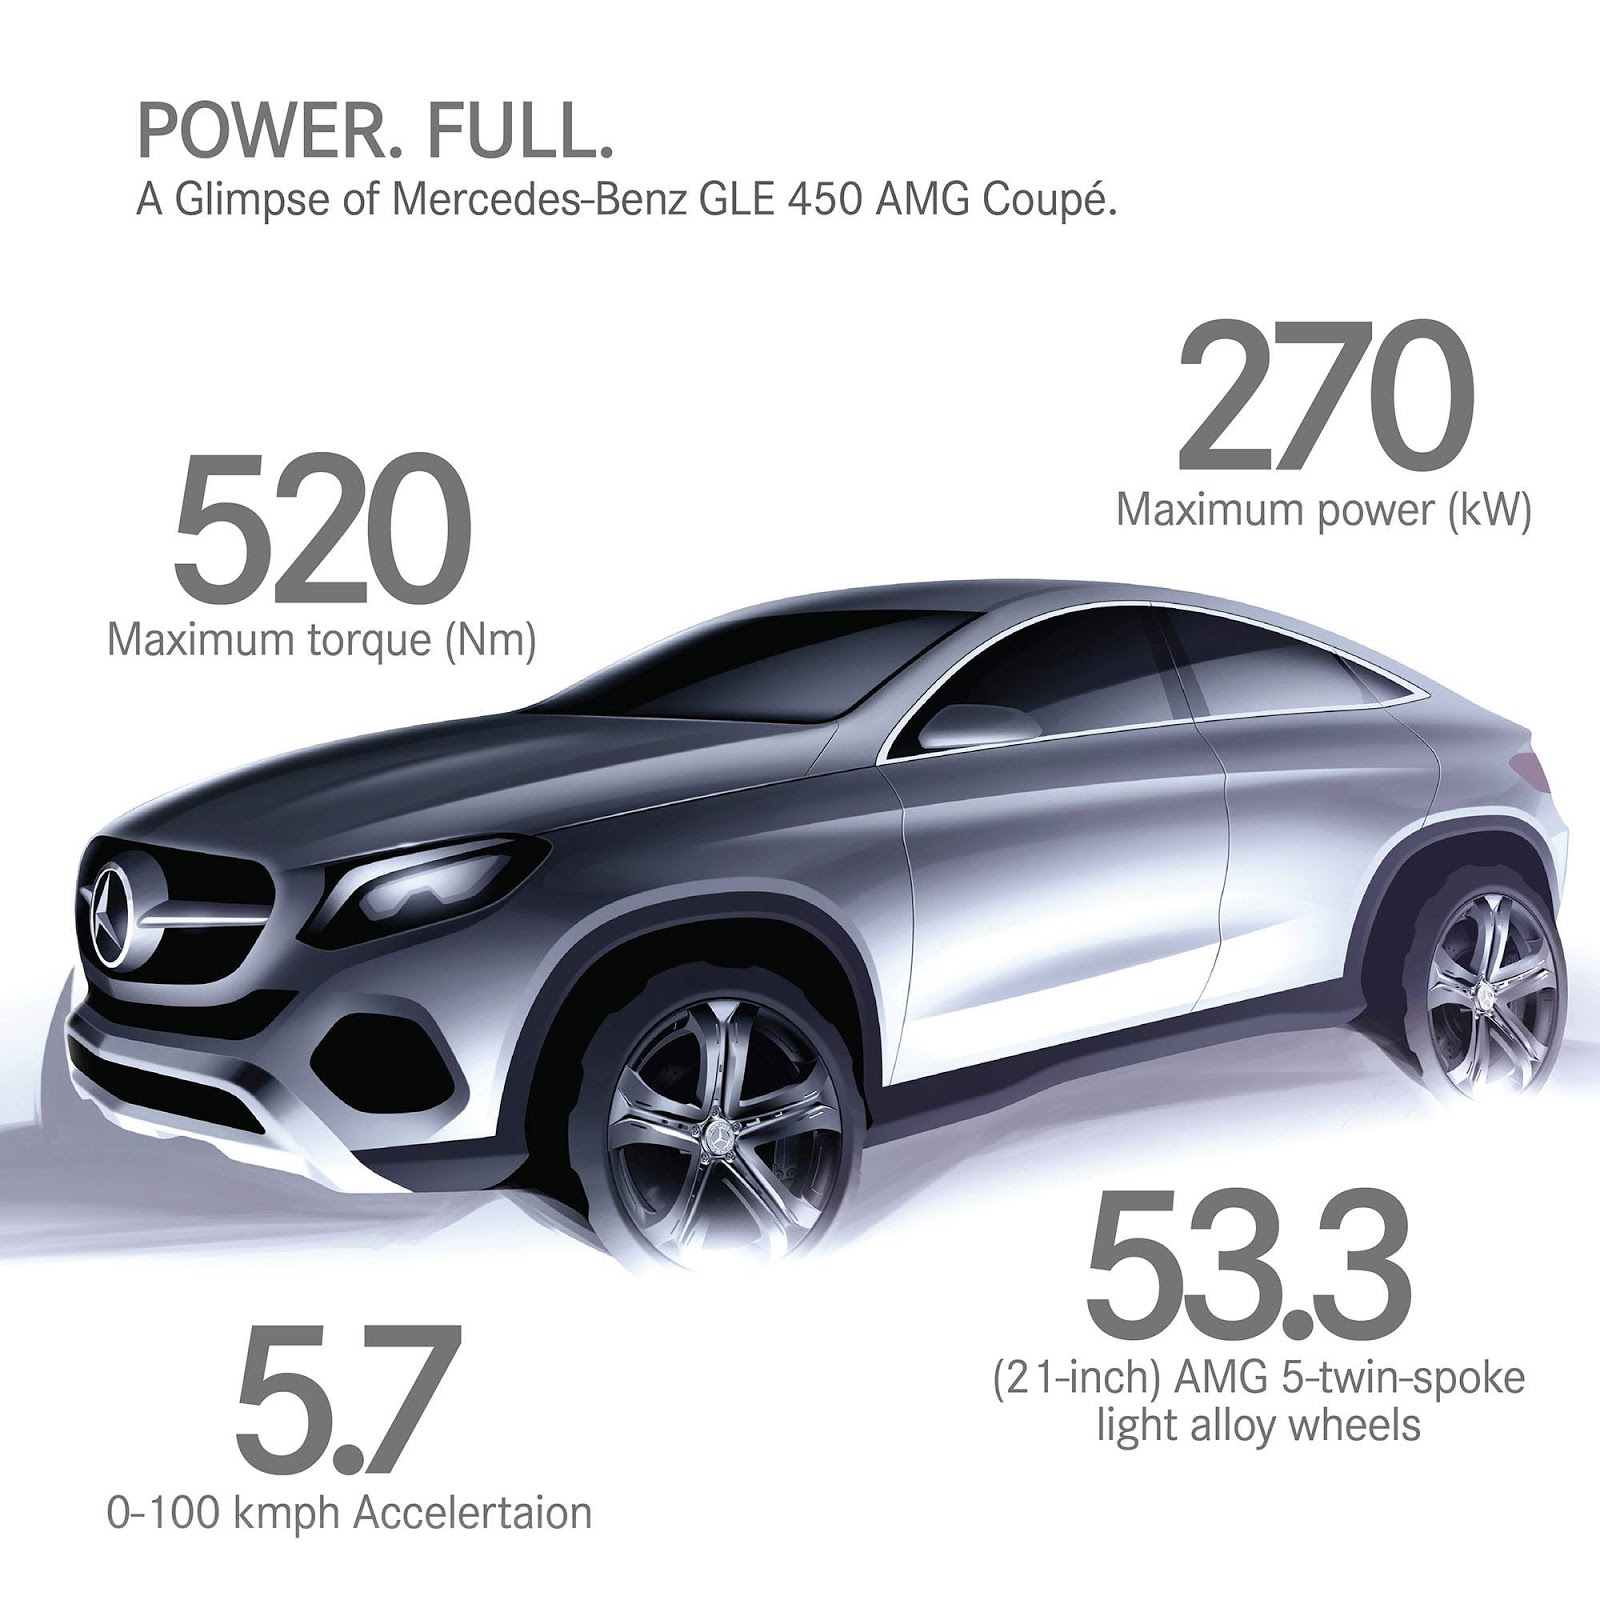 Mercedes benz gle 450 amg coup launched in for Mercedes benz 450 suv price